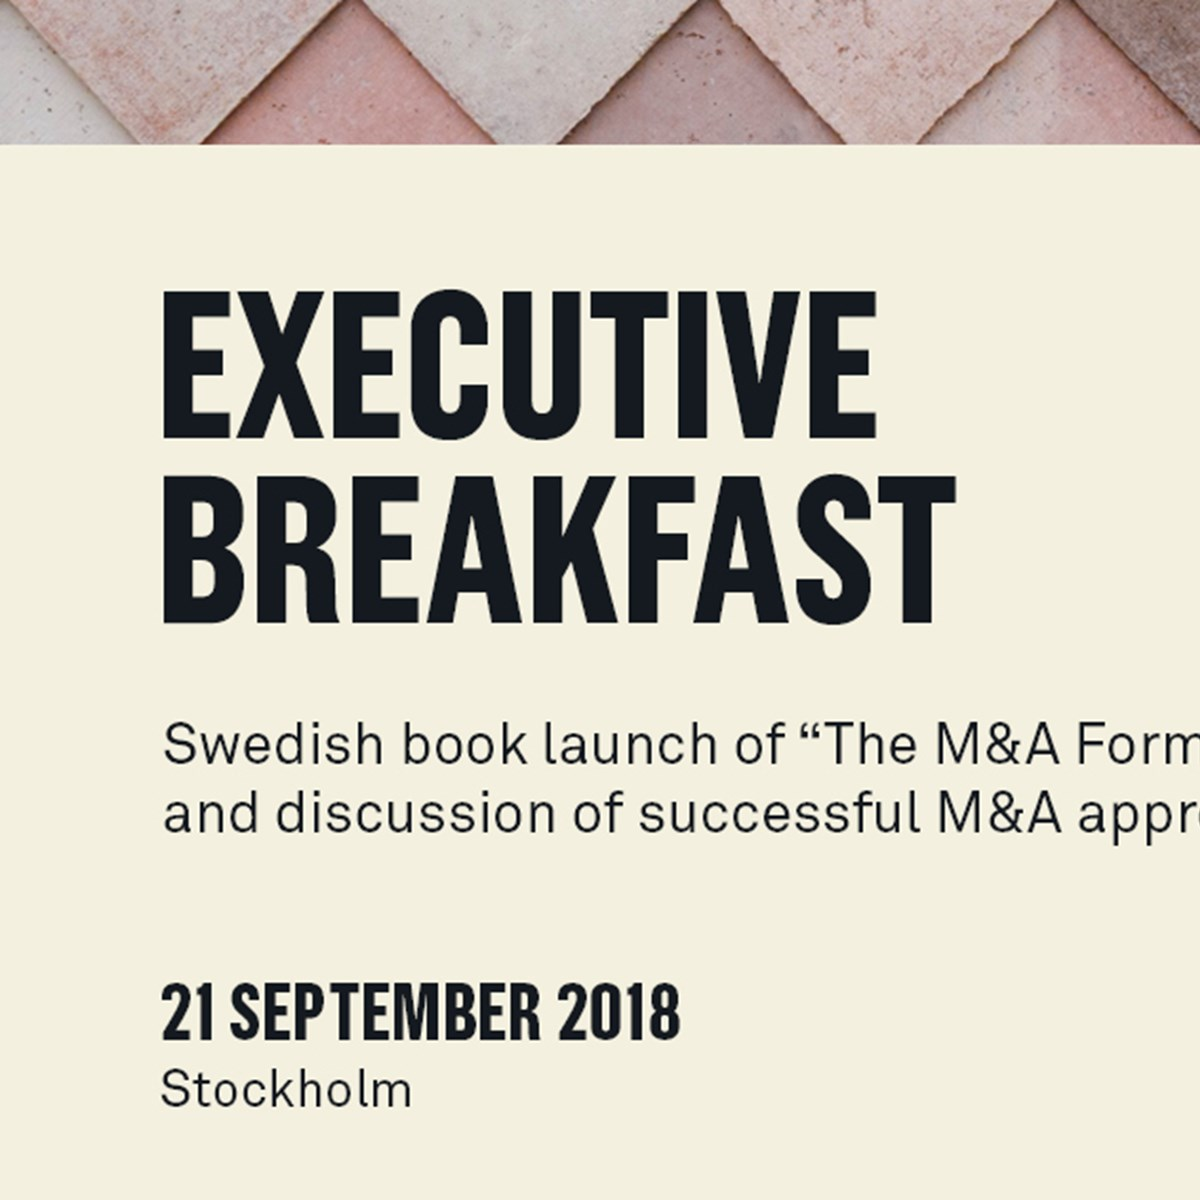 Executive Breakfast and book launch of The M&A Formula